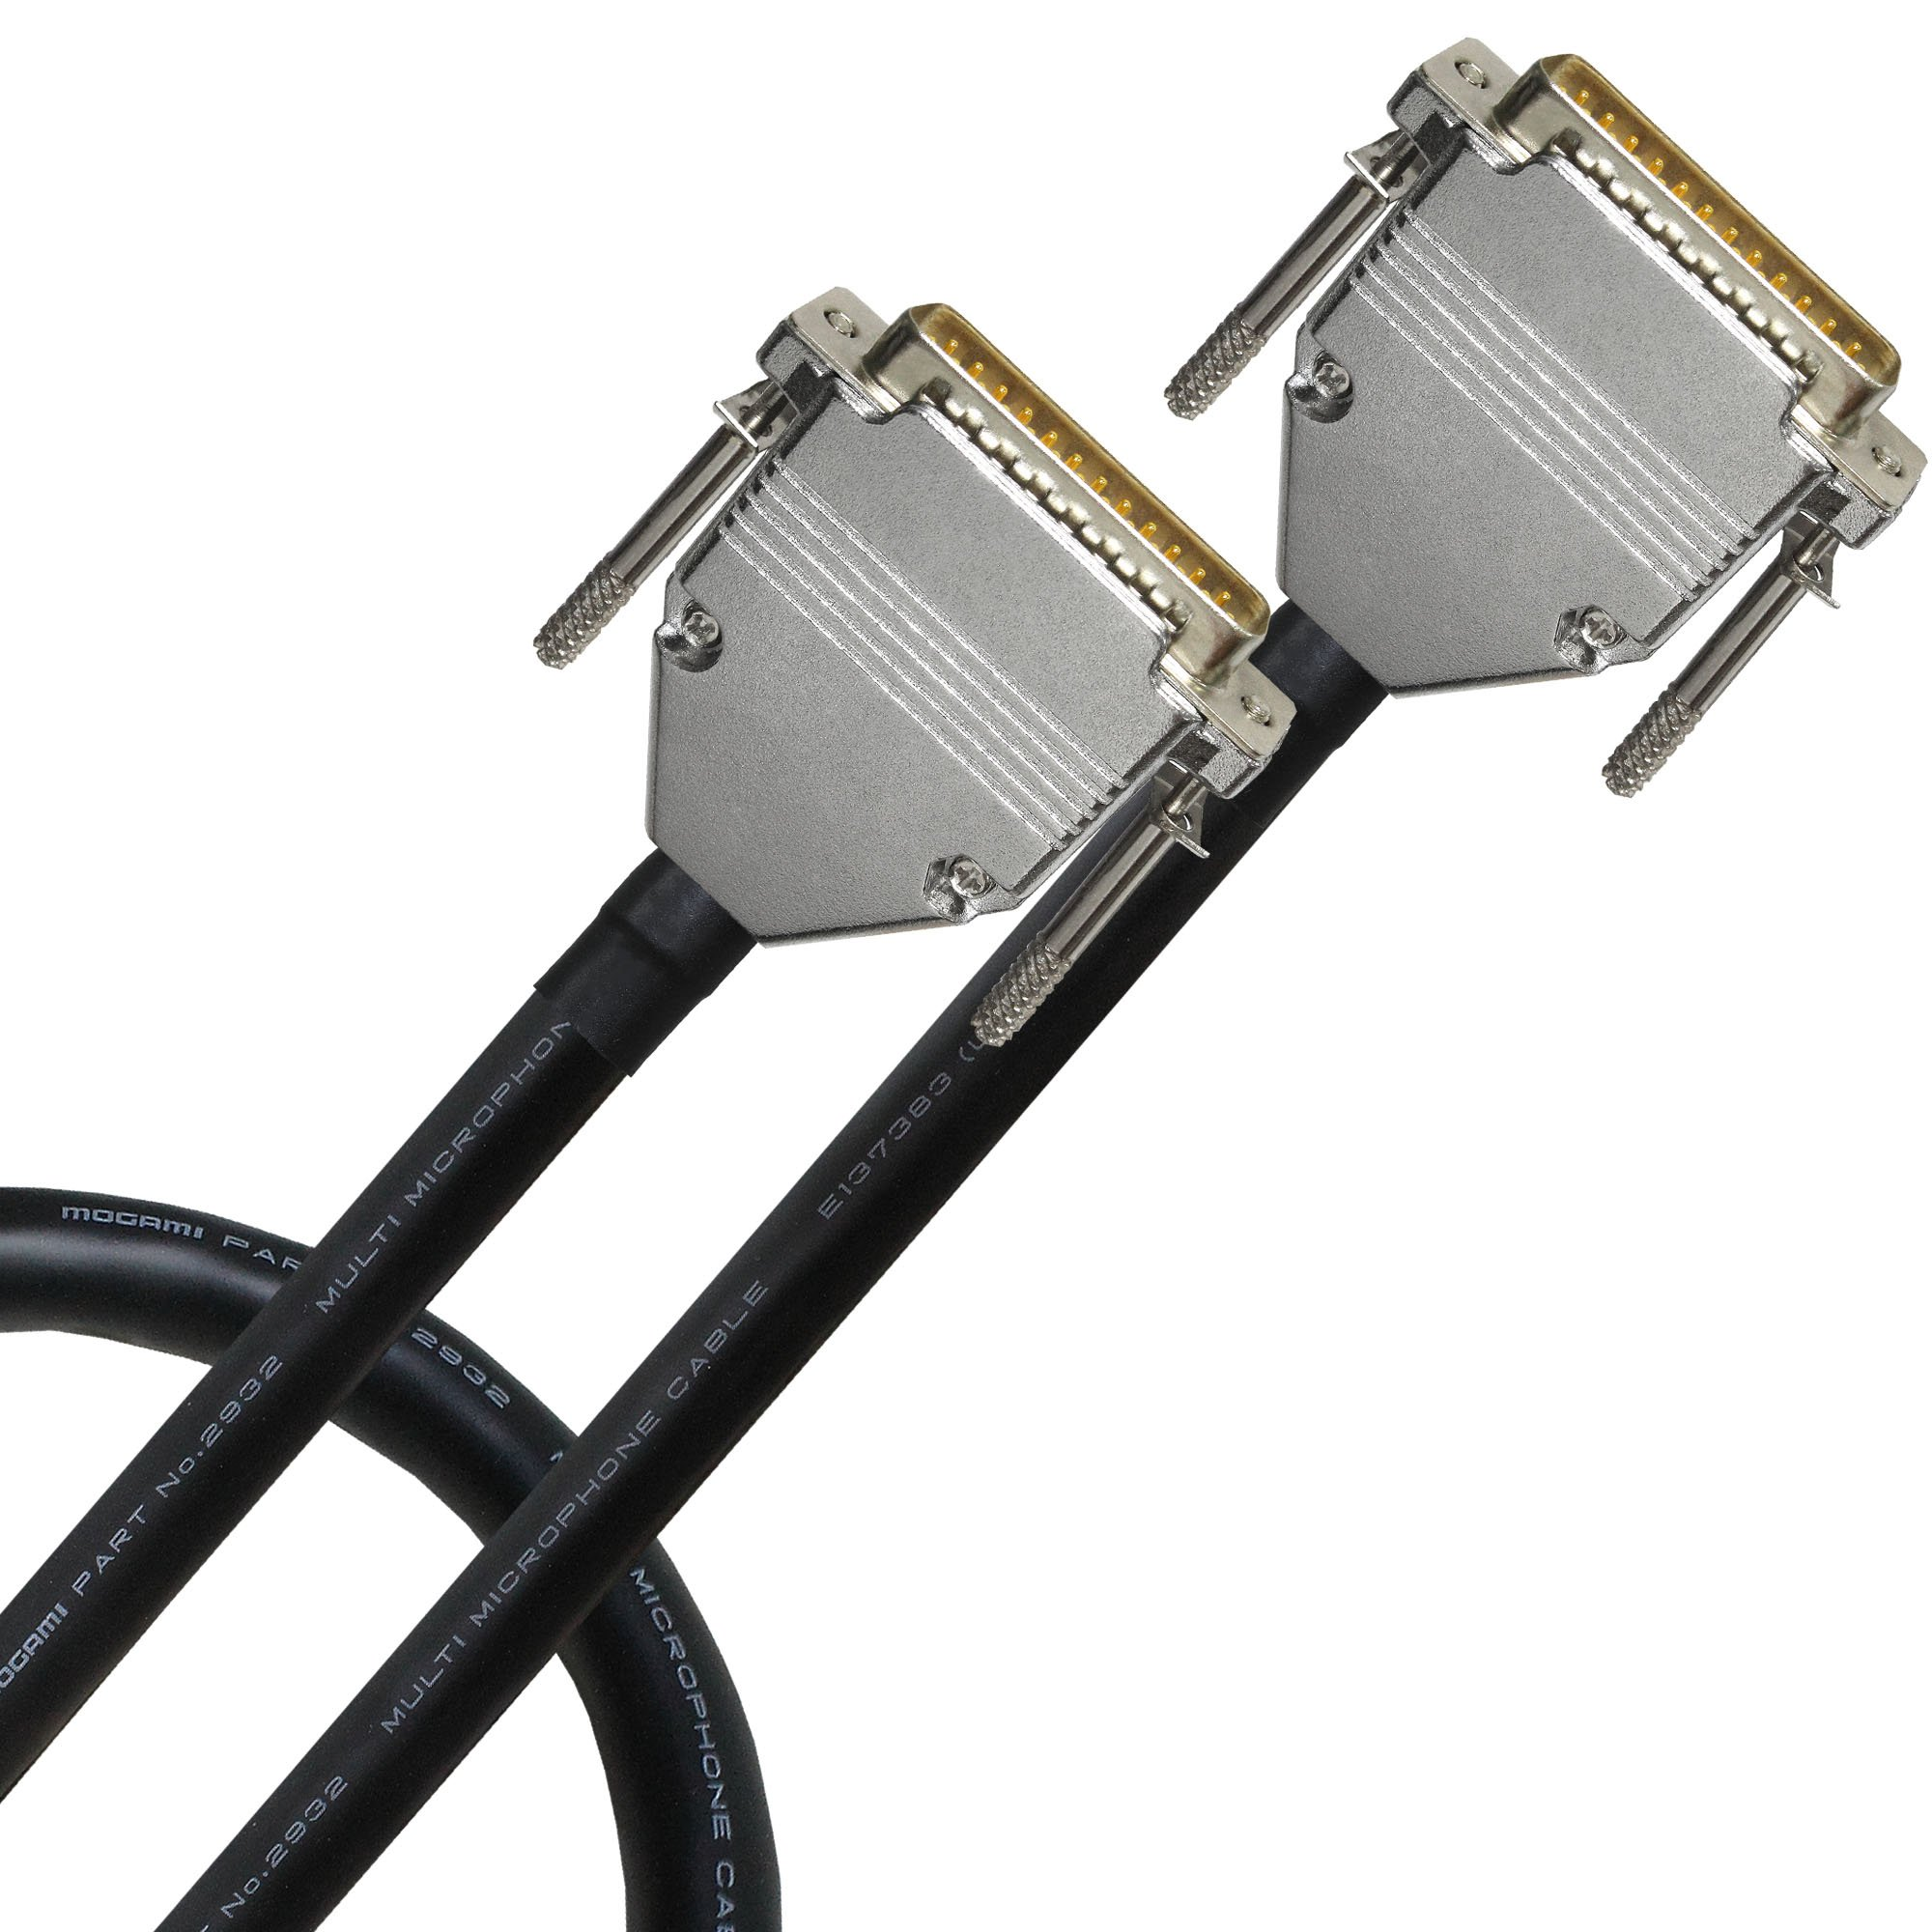 3 Foot - Balanced Analog Snake Cable CUSTOM MADE By WORLDS BEST CABLES – using Mogami 2932 wire & Eminence E800 Gold D-SUB DB25 Plugs